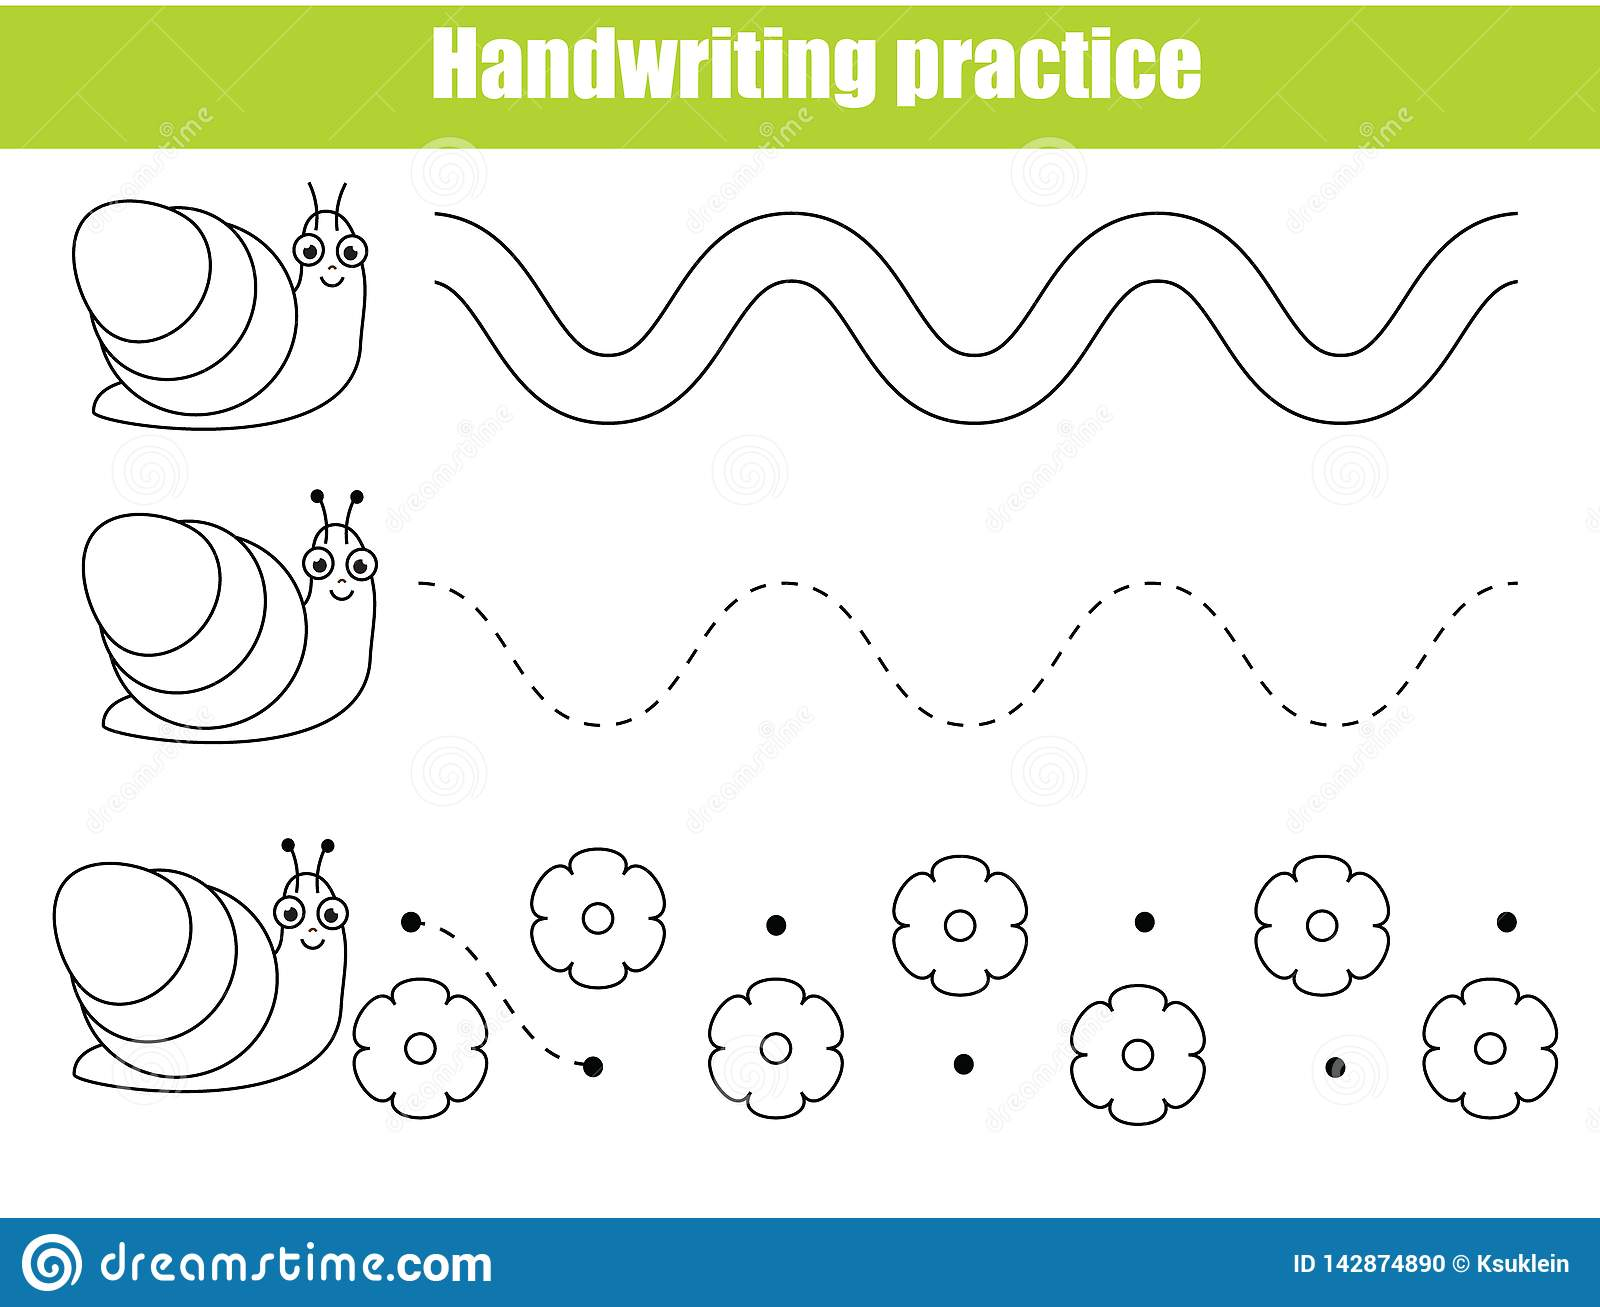 Preschool Handwriting Practice Sheet Educational Children Game Printable Worksheet For Kids